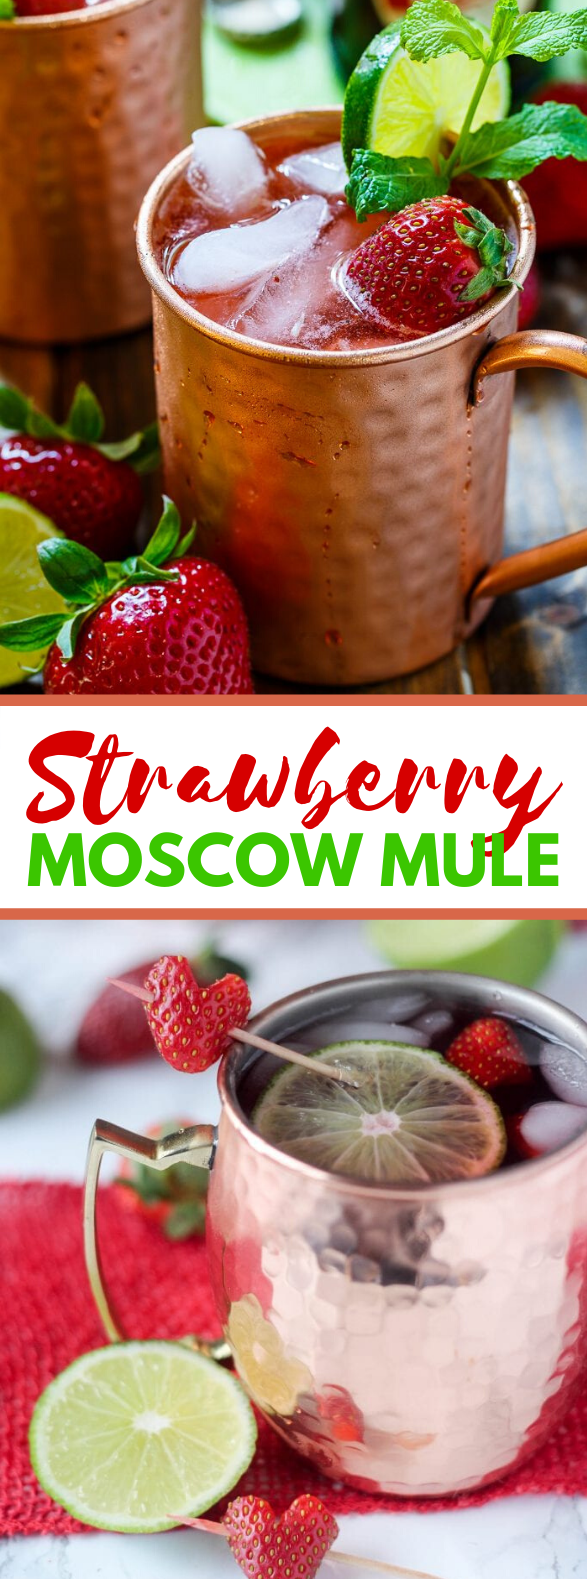 STRAWBERRY MOSCOW MULES #drinks #cocktails